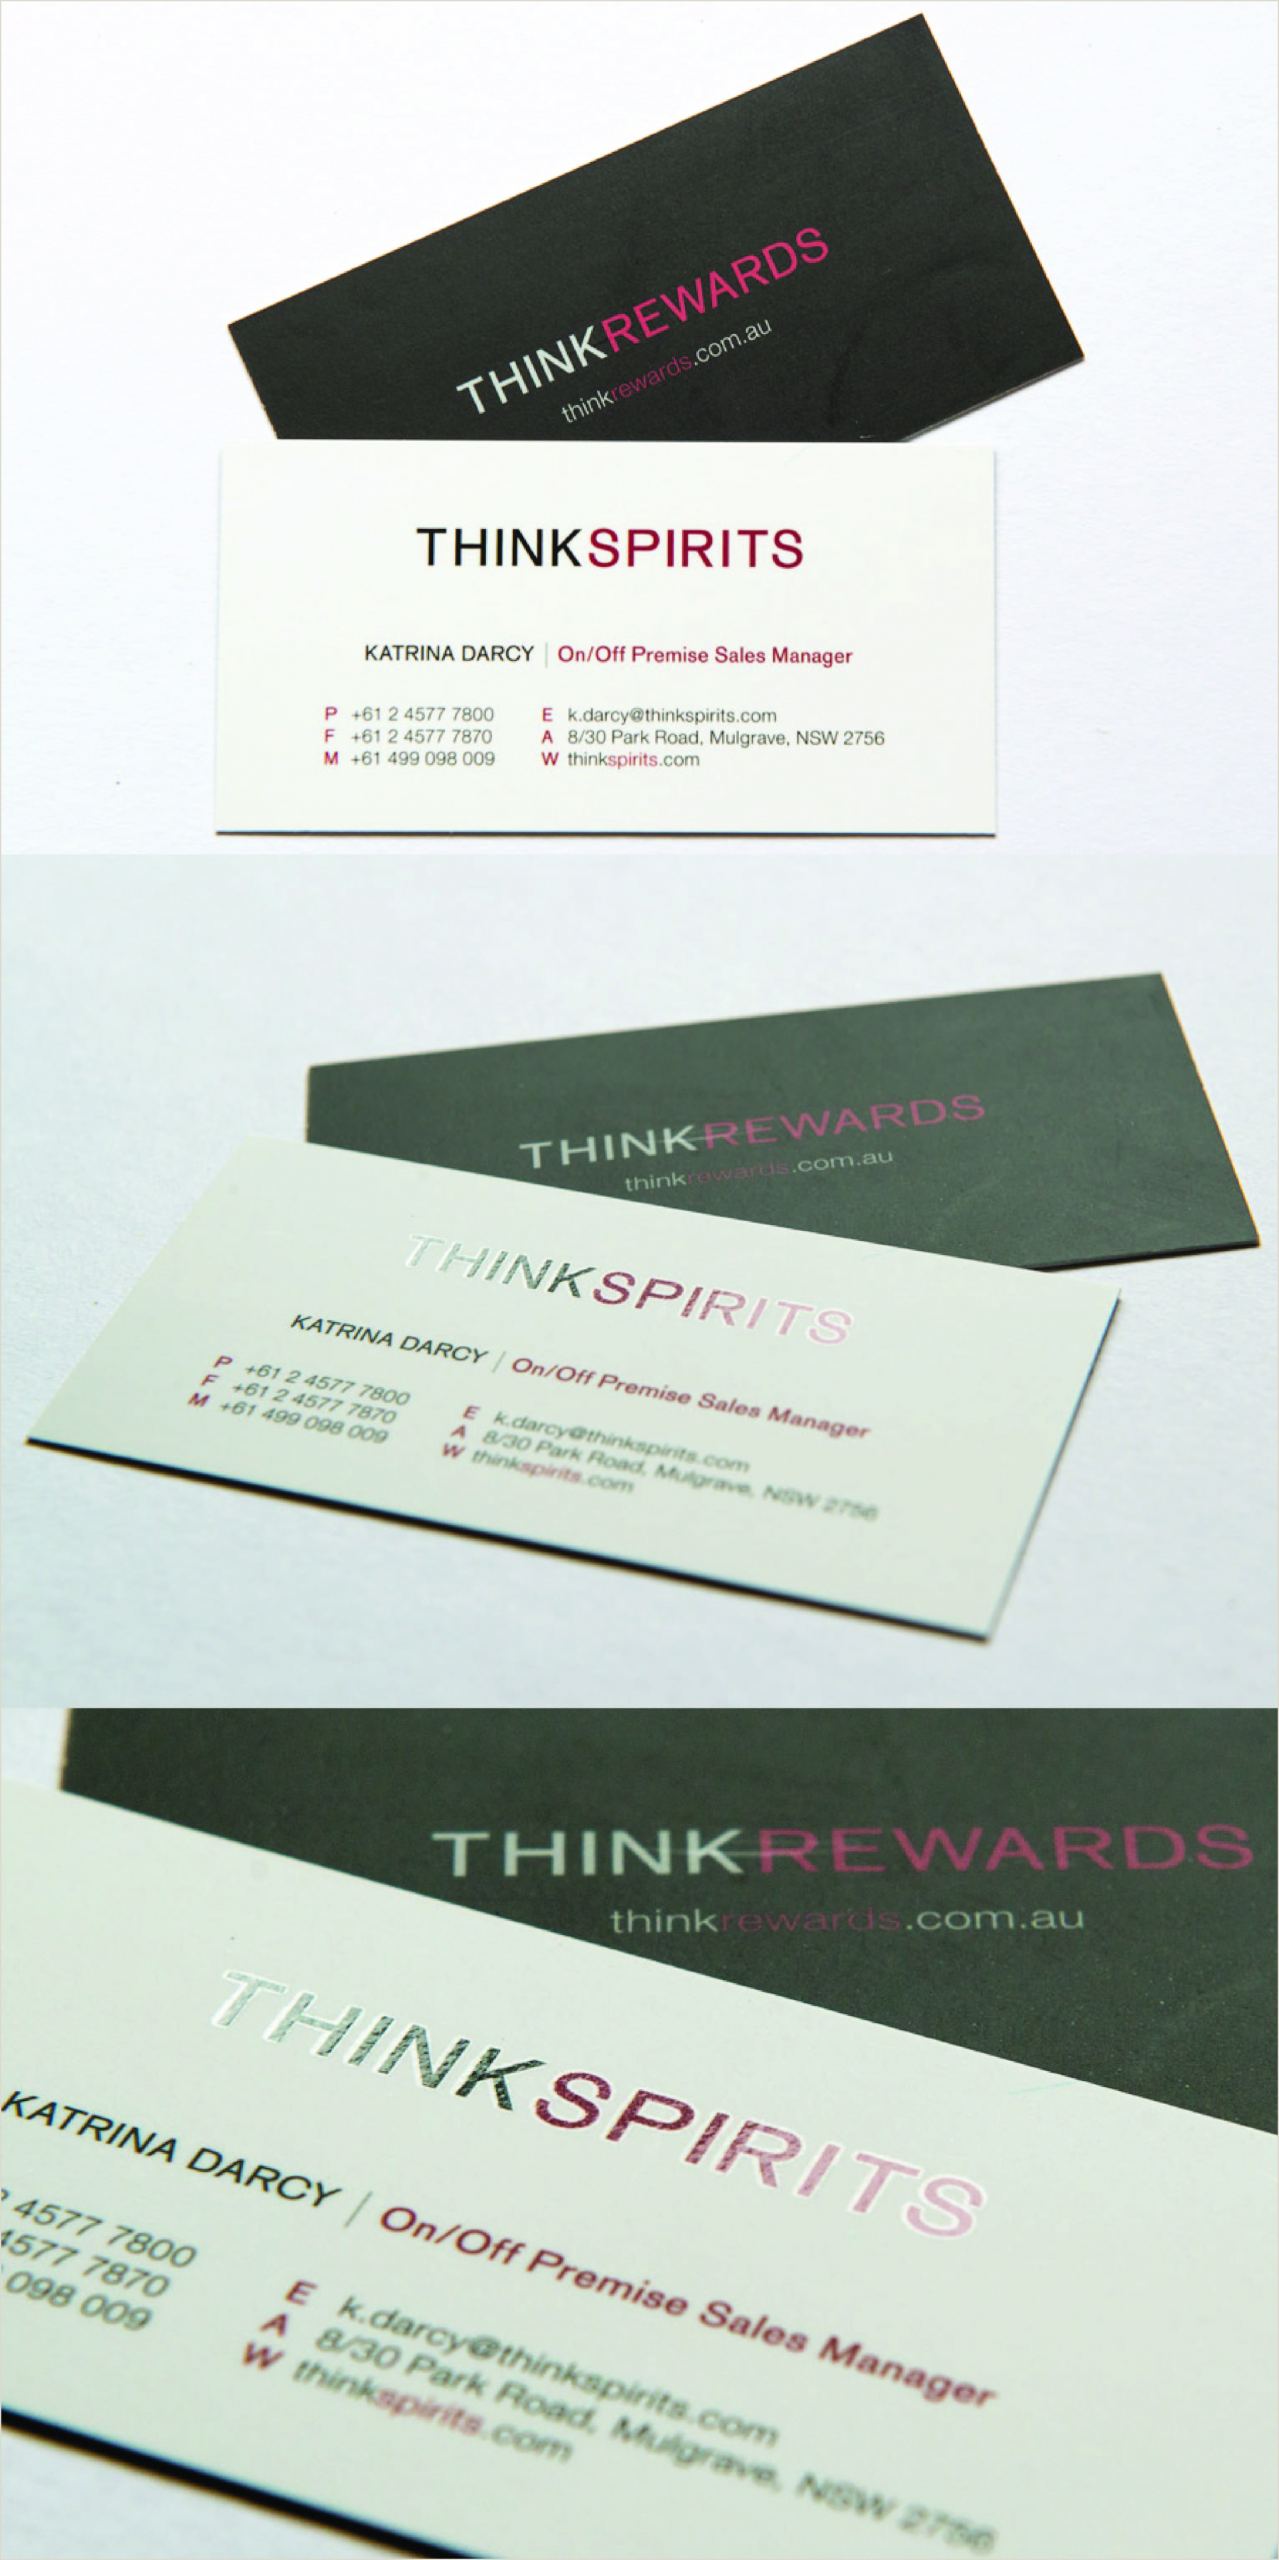 Beautiful Business Cards The Economy Business Cards Are The Standard Choice Out Of